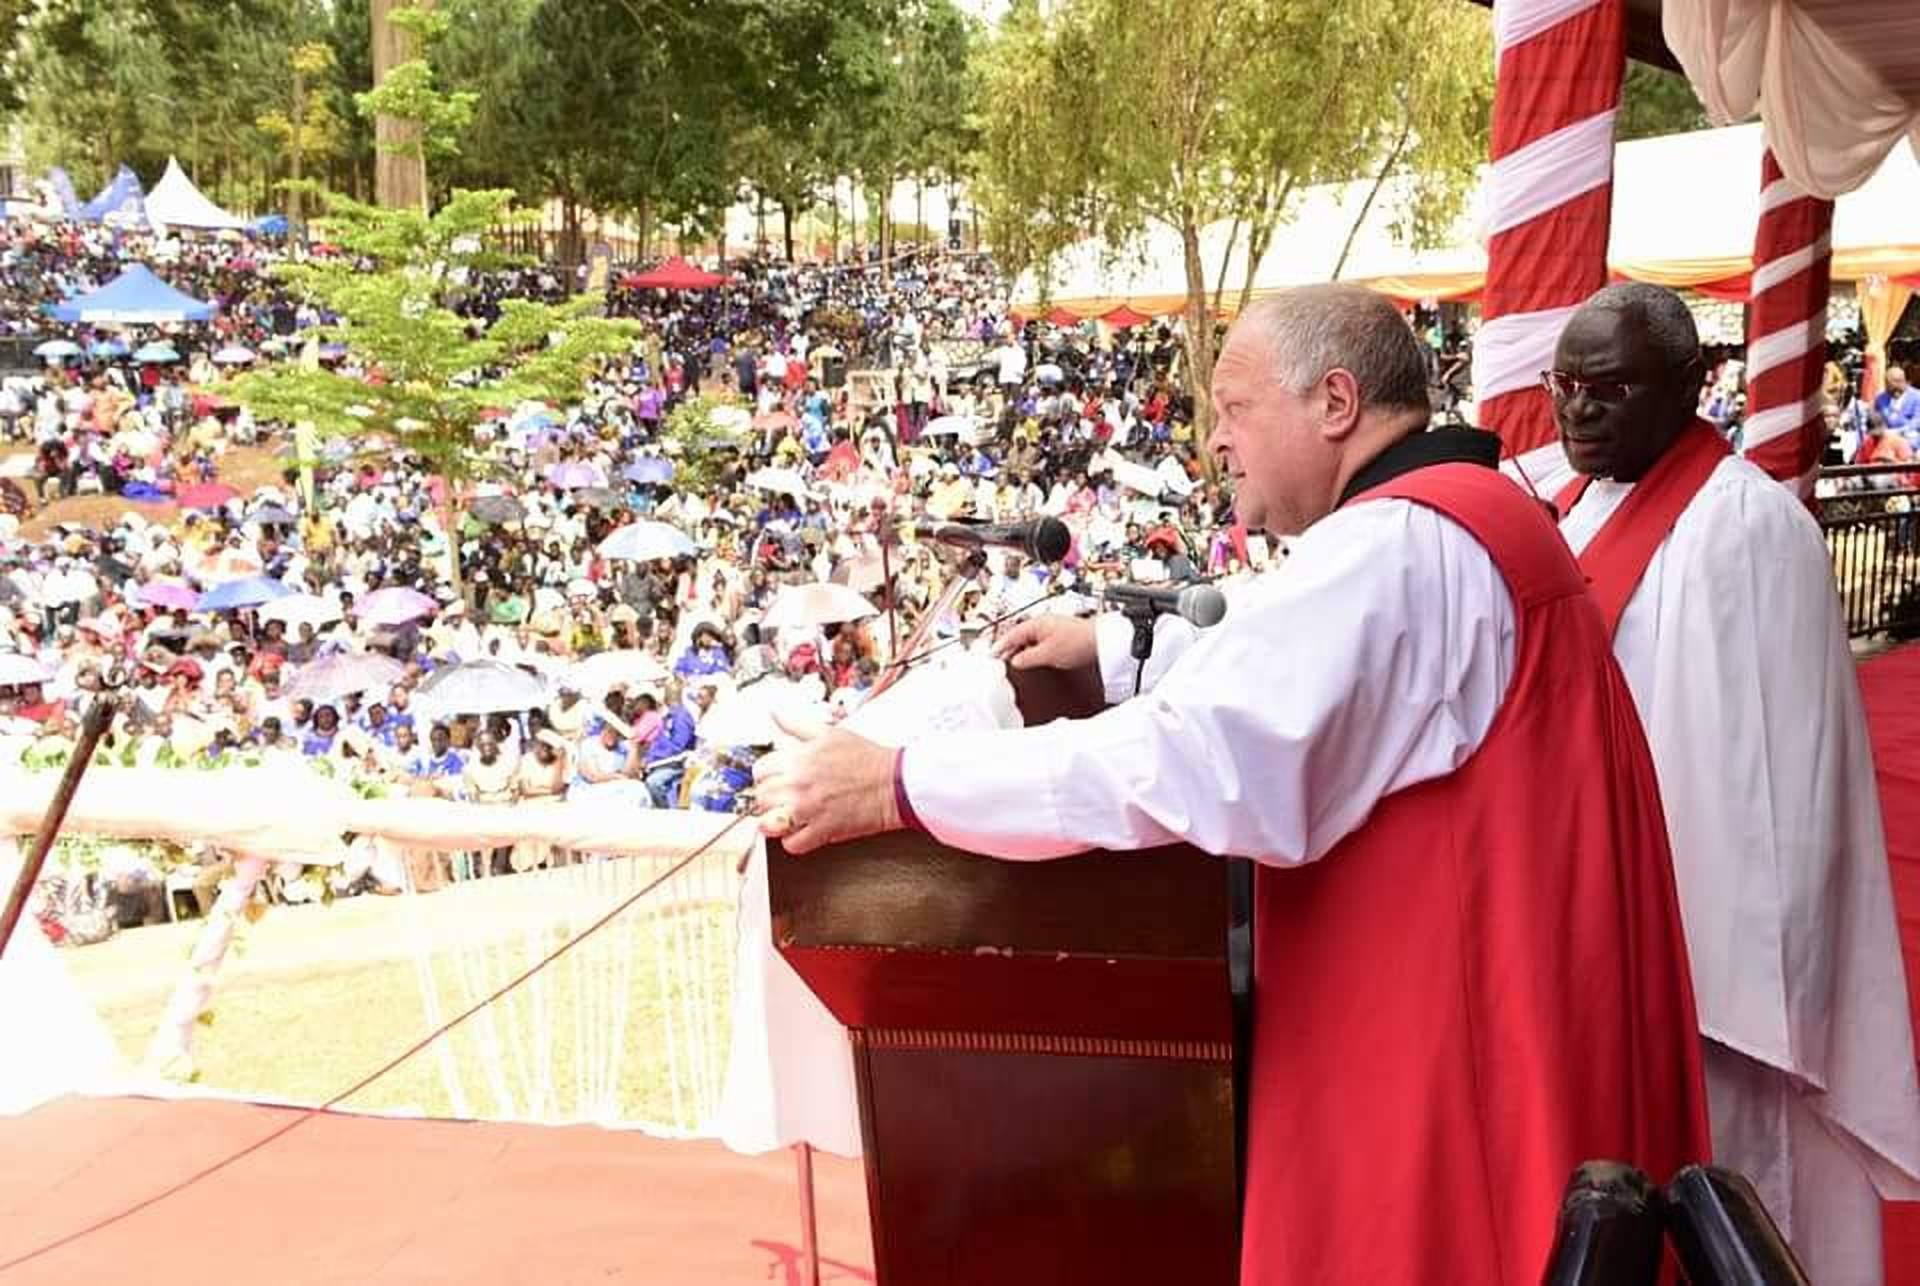 Bishop David Grants Williams of Basingstoke - UK joined by Rev. Dr. John Ssenyonyi during the service at Namugongo(COURTESY PHOTO)